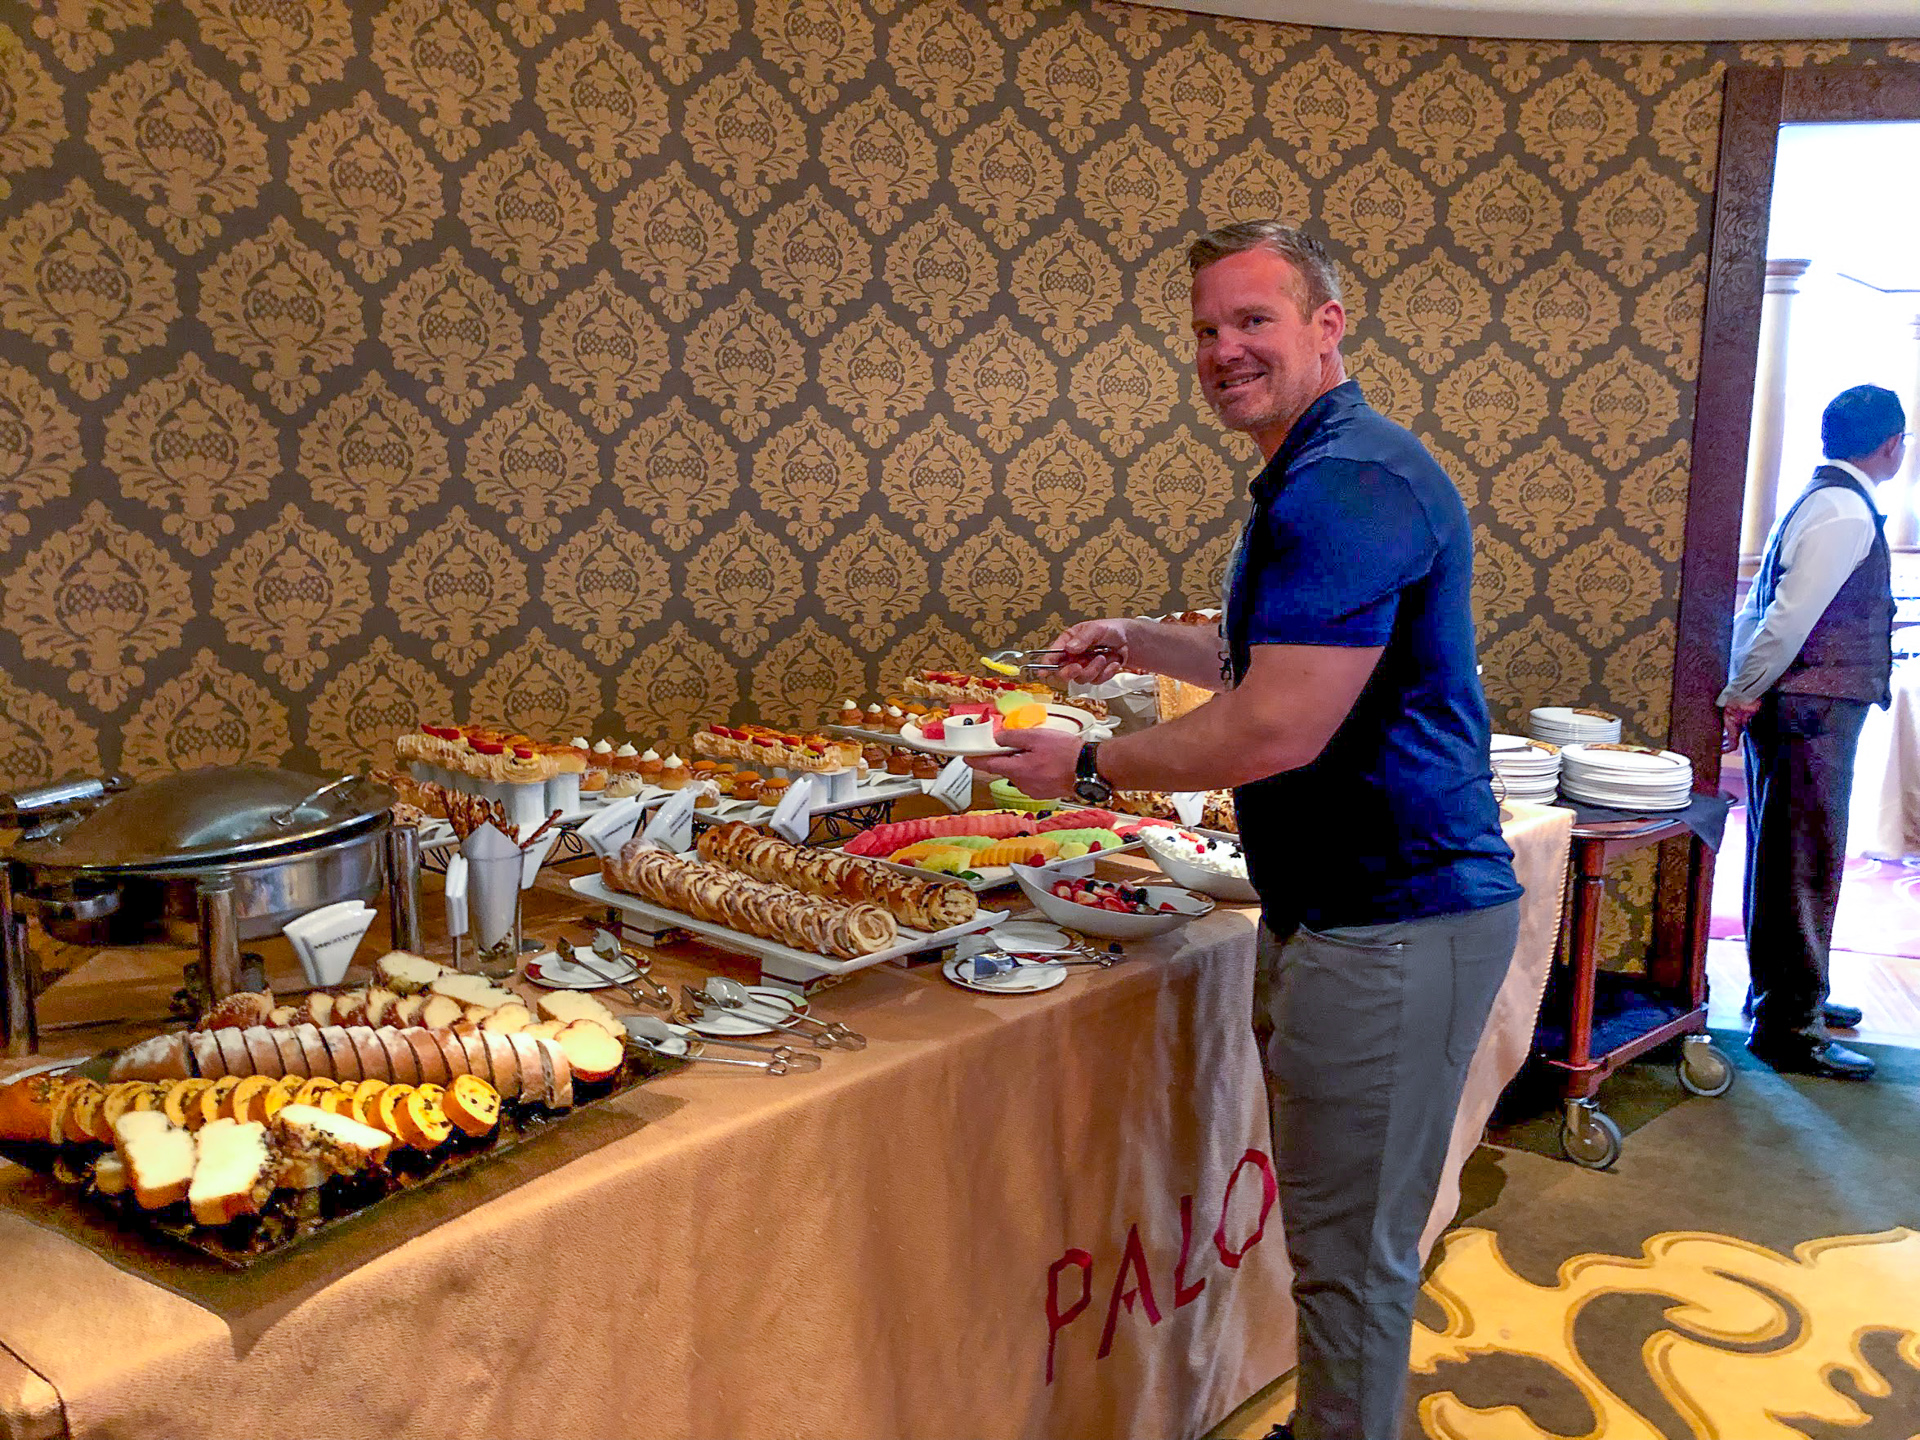 Man at the Palo Brunch buffet on the Disney Dream